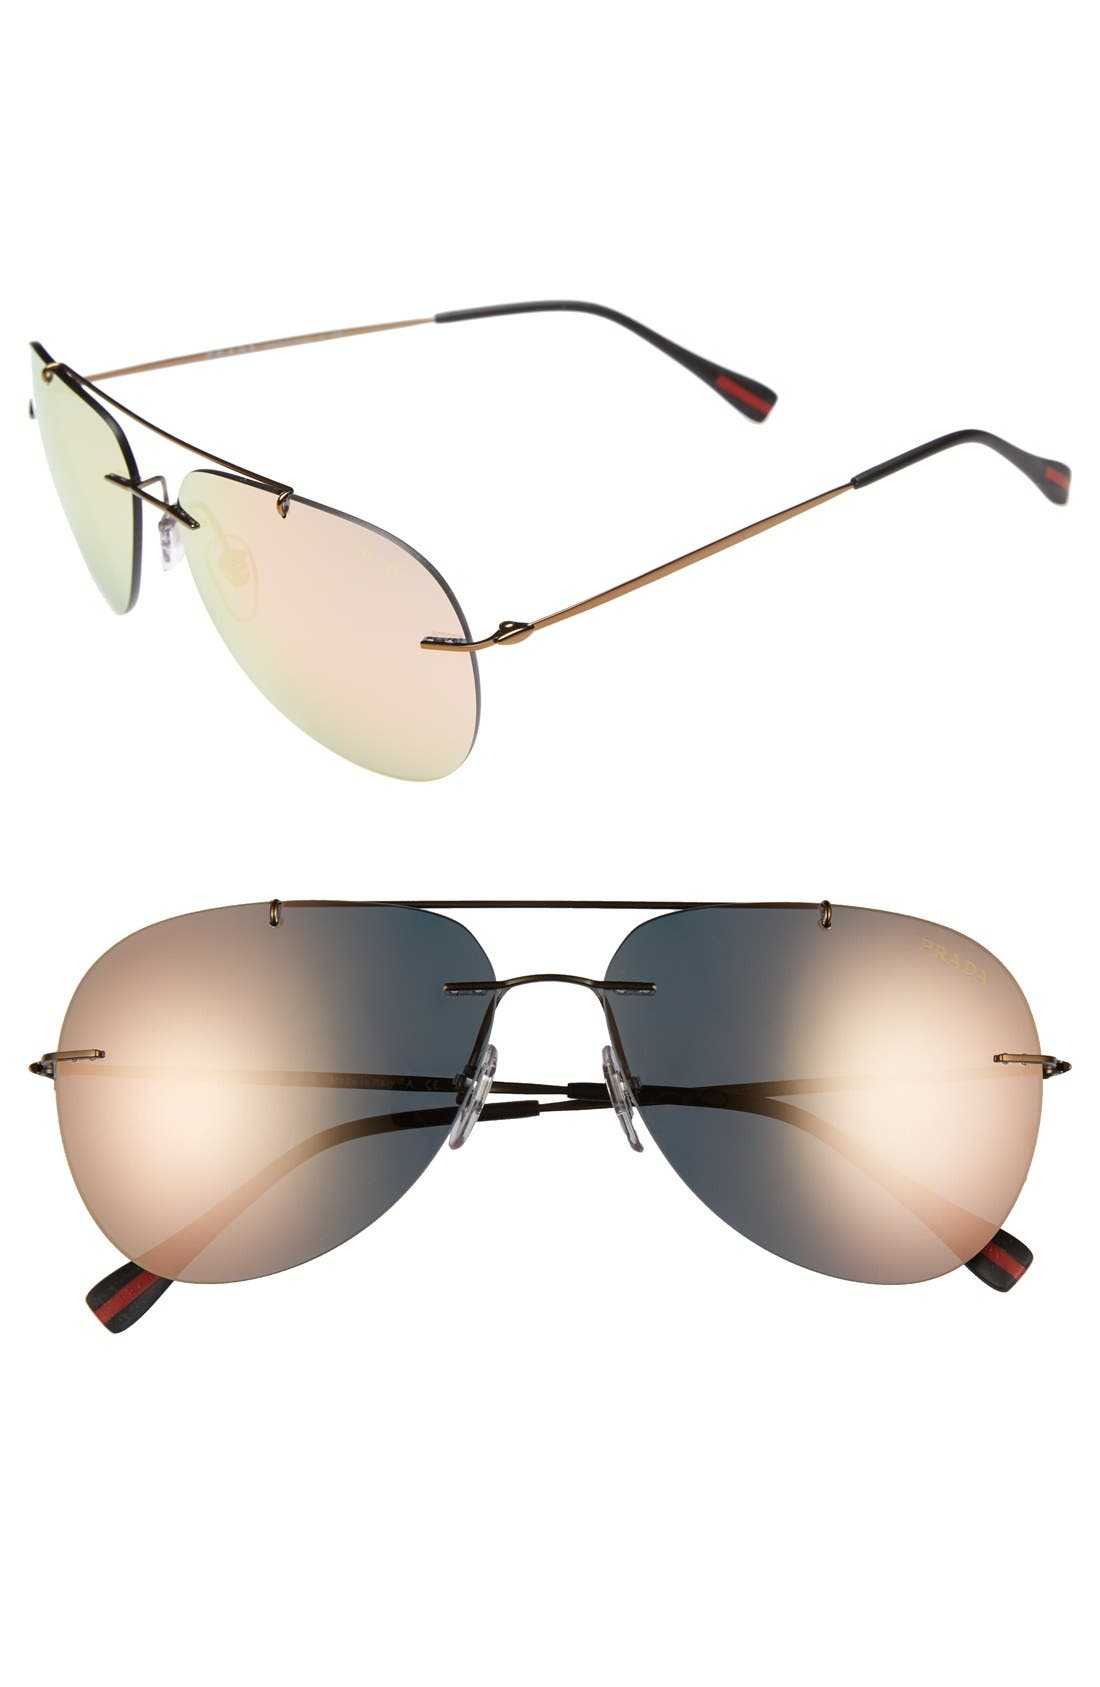 Alternate Image 1 Selected - Prada 60mm Rimless Aviator Sunglasses